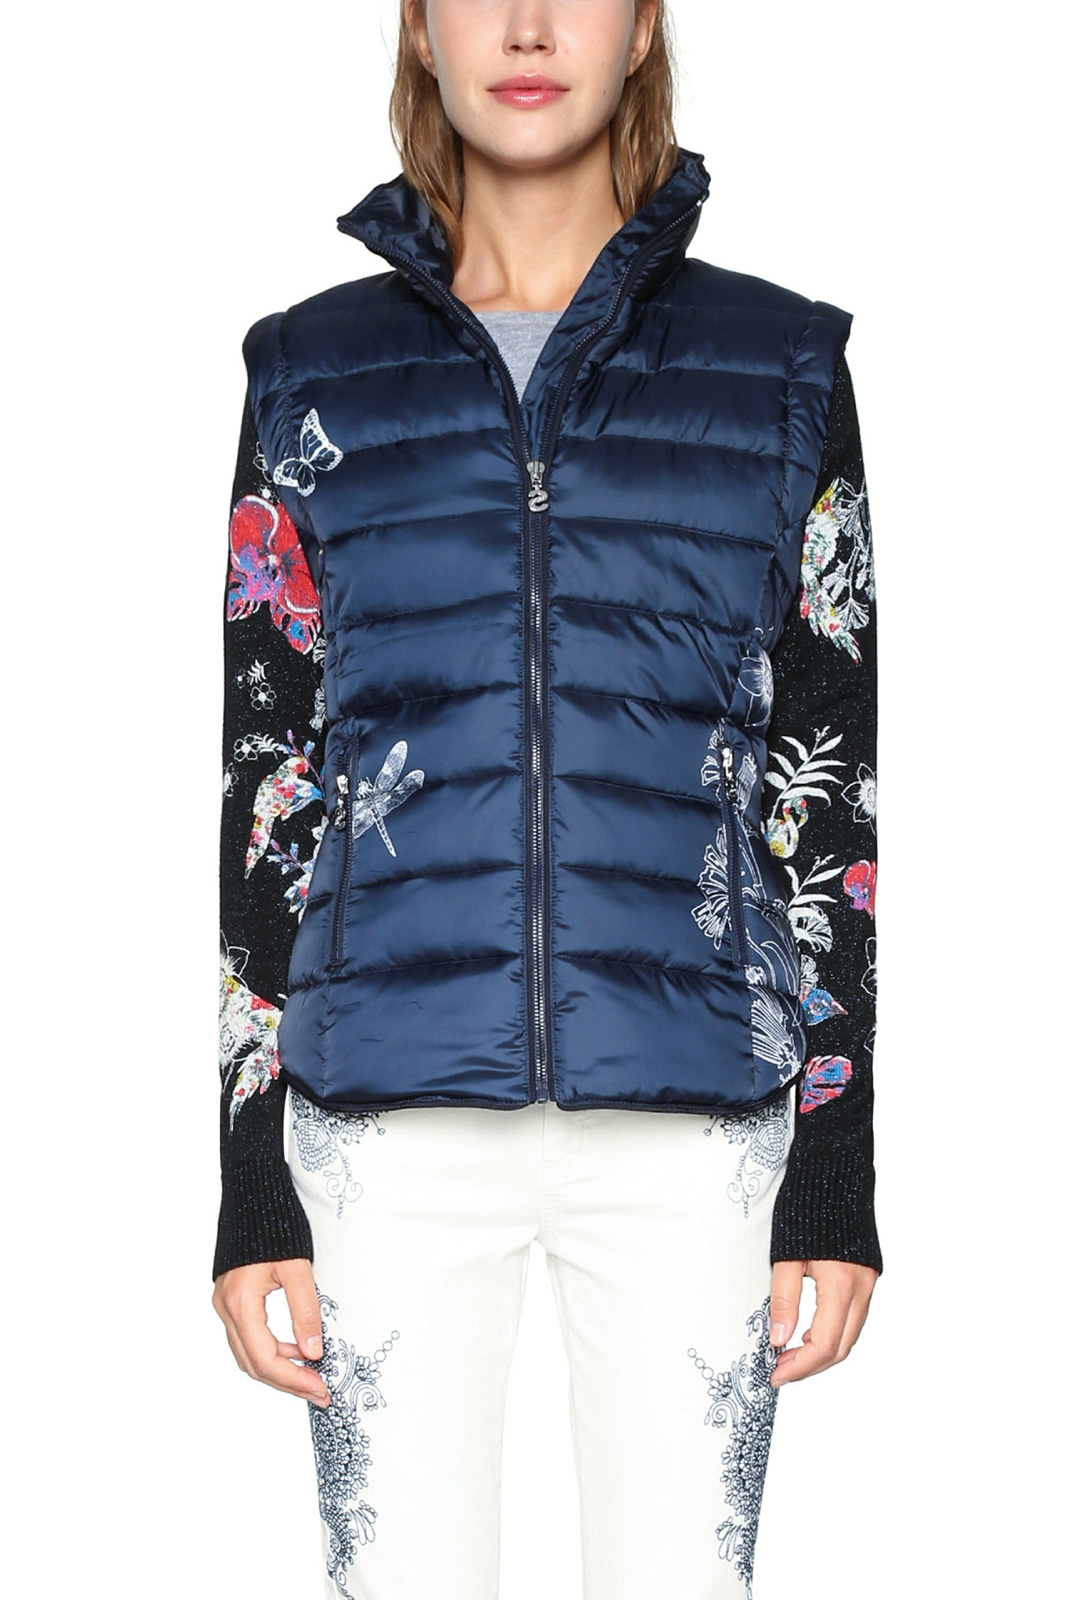 outlet on sale run shoes best shoes Details about Desigual Padded Blue Alexa Coat Jacket Knit Floral Sleeves  36-46 UK8-18 RRP?139